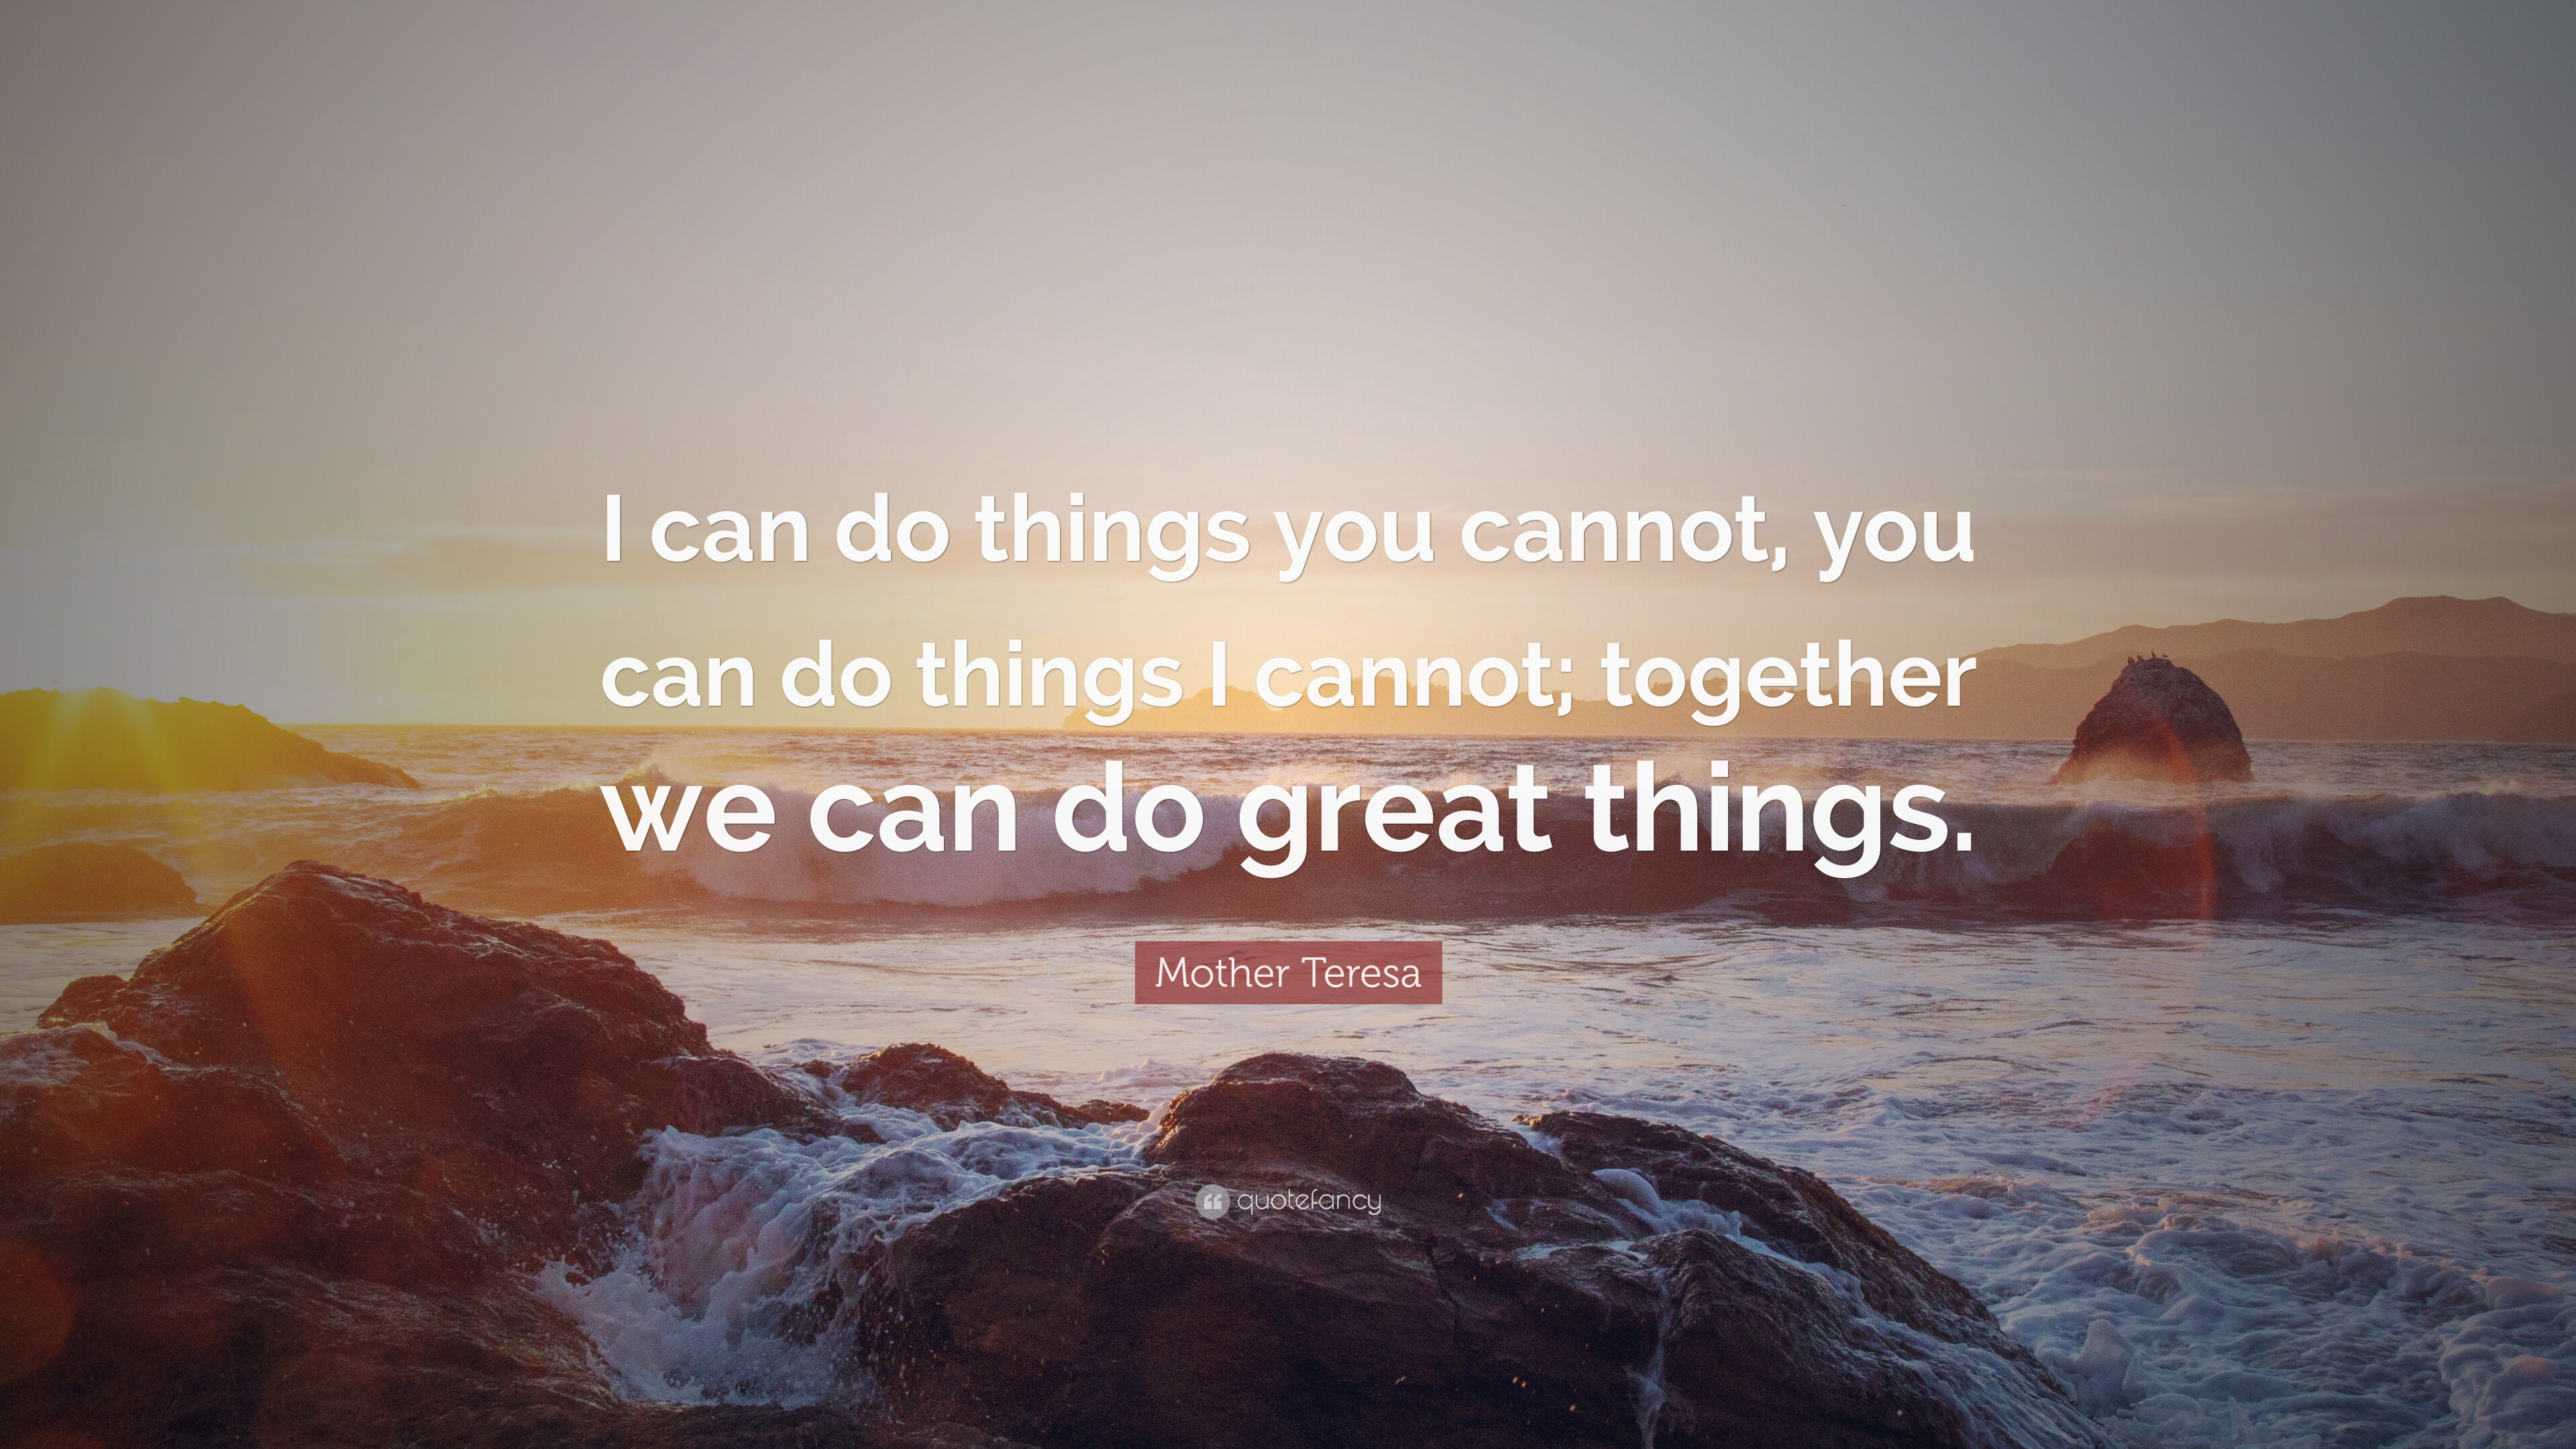 Do Cannot We Great Can I Cannot Can Can You Do Things You Things Do Things Together I